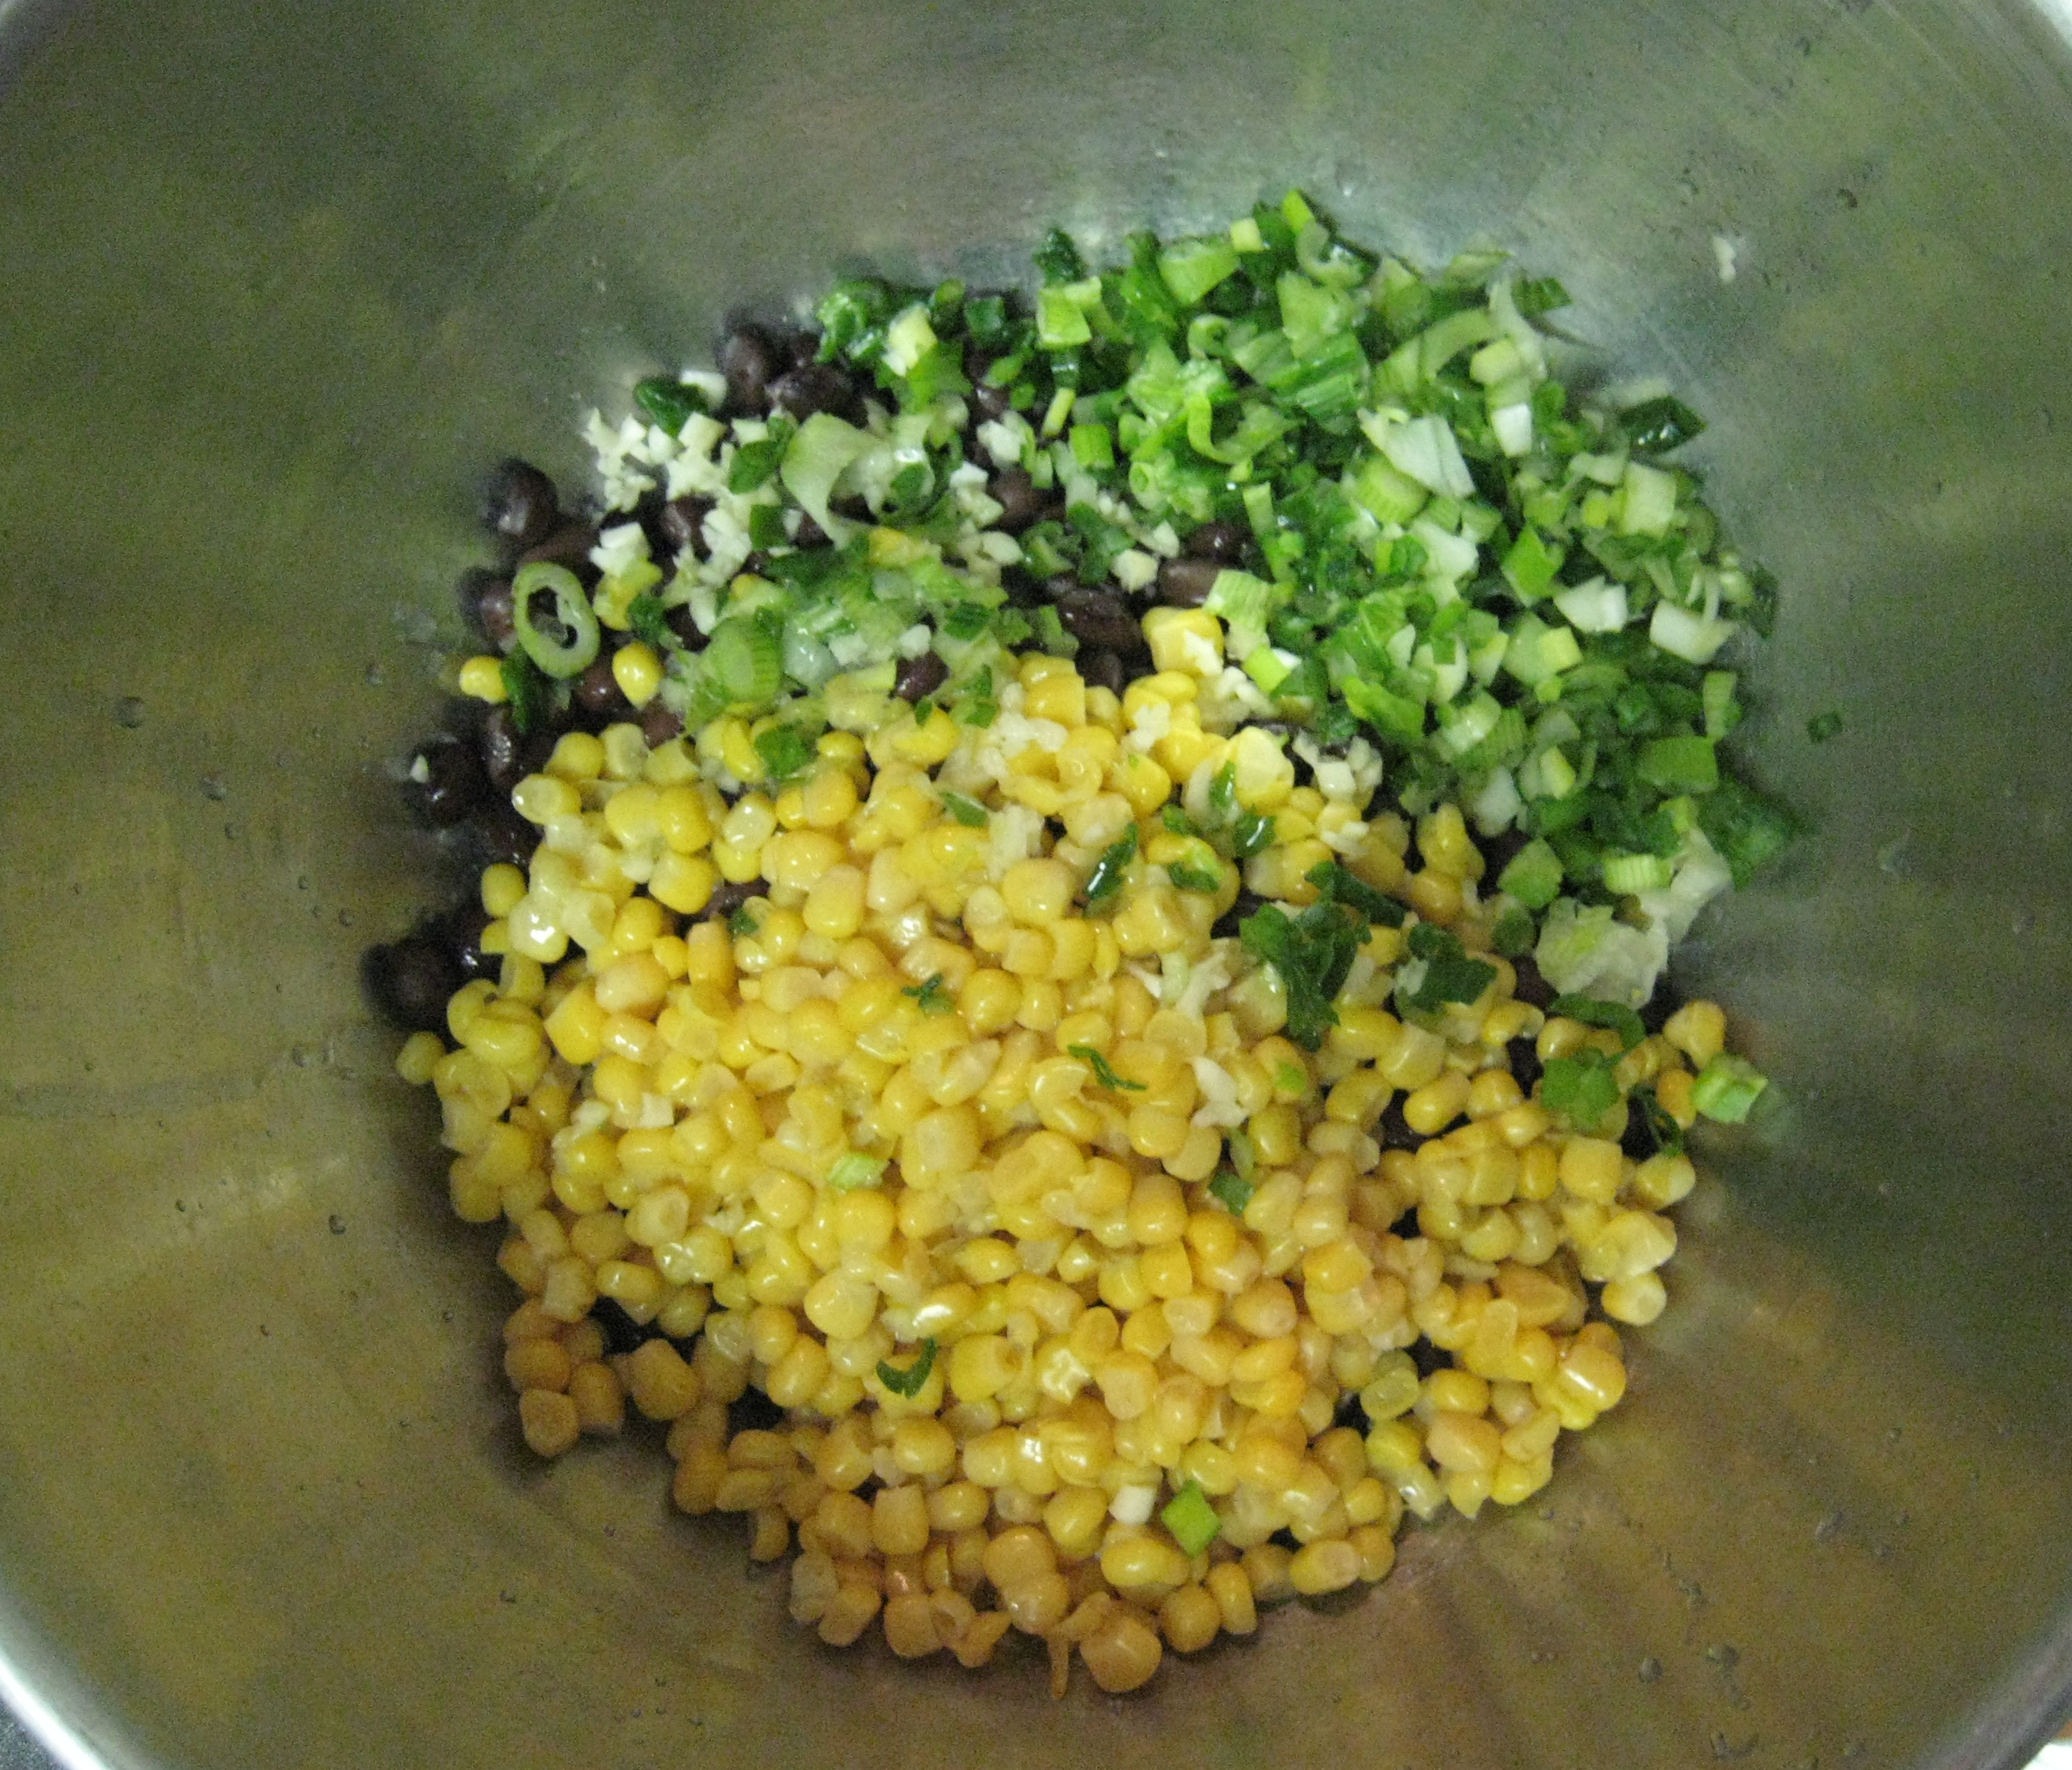 Mixing the corn black bean salad.